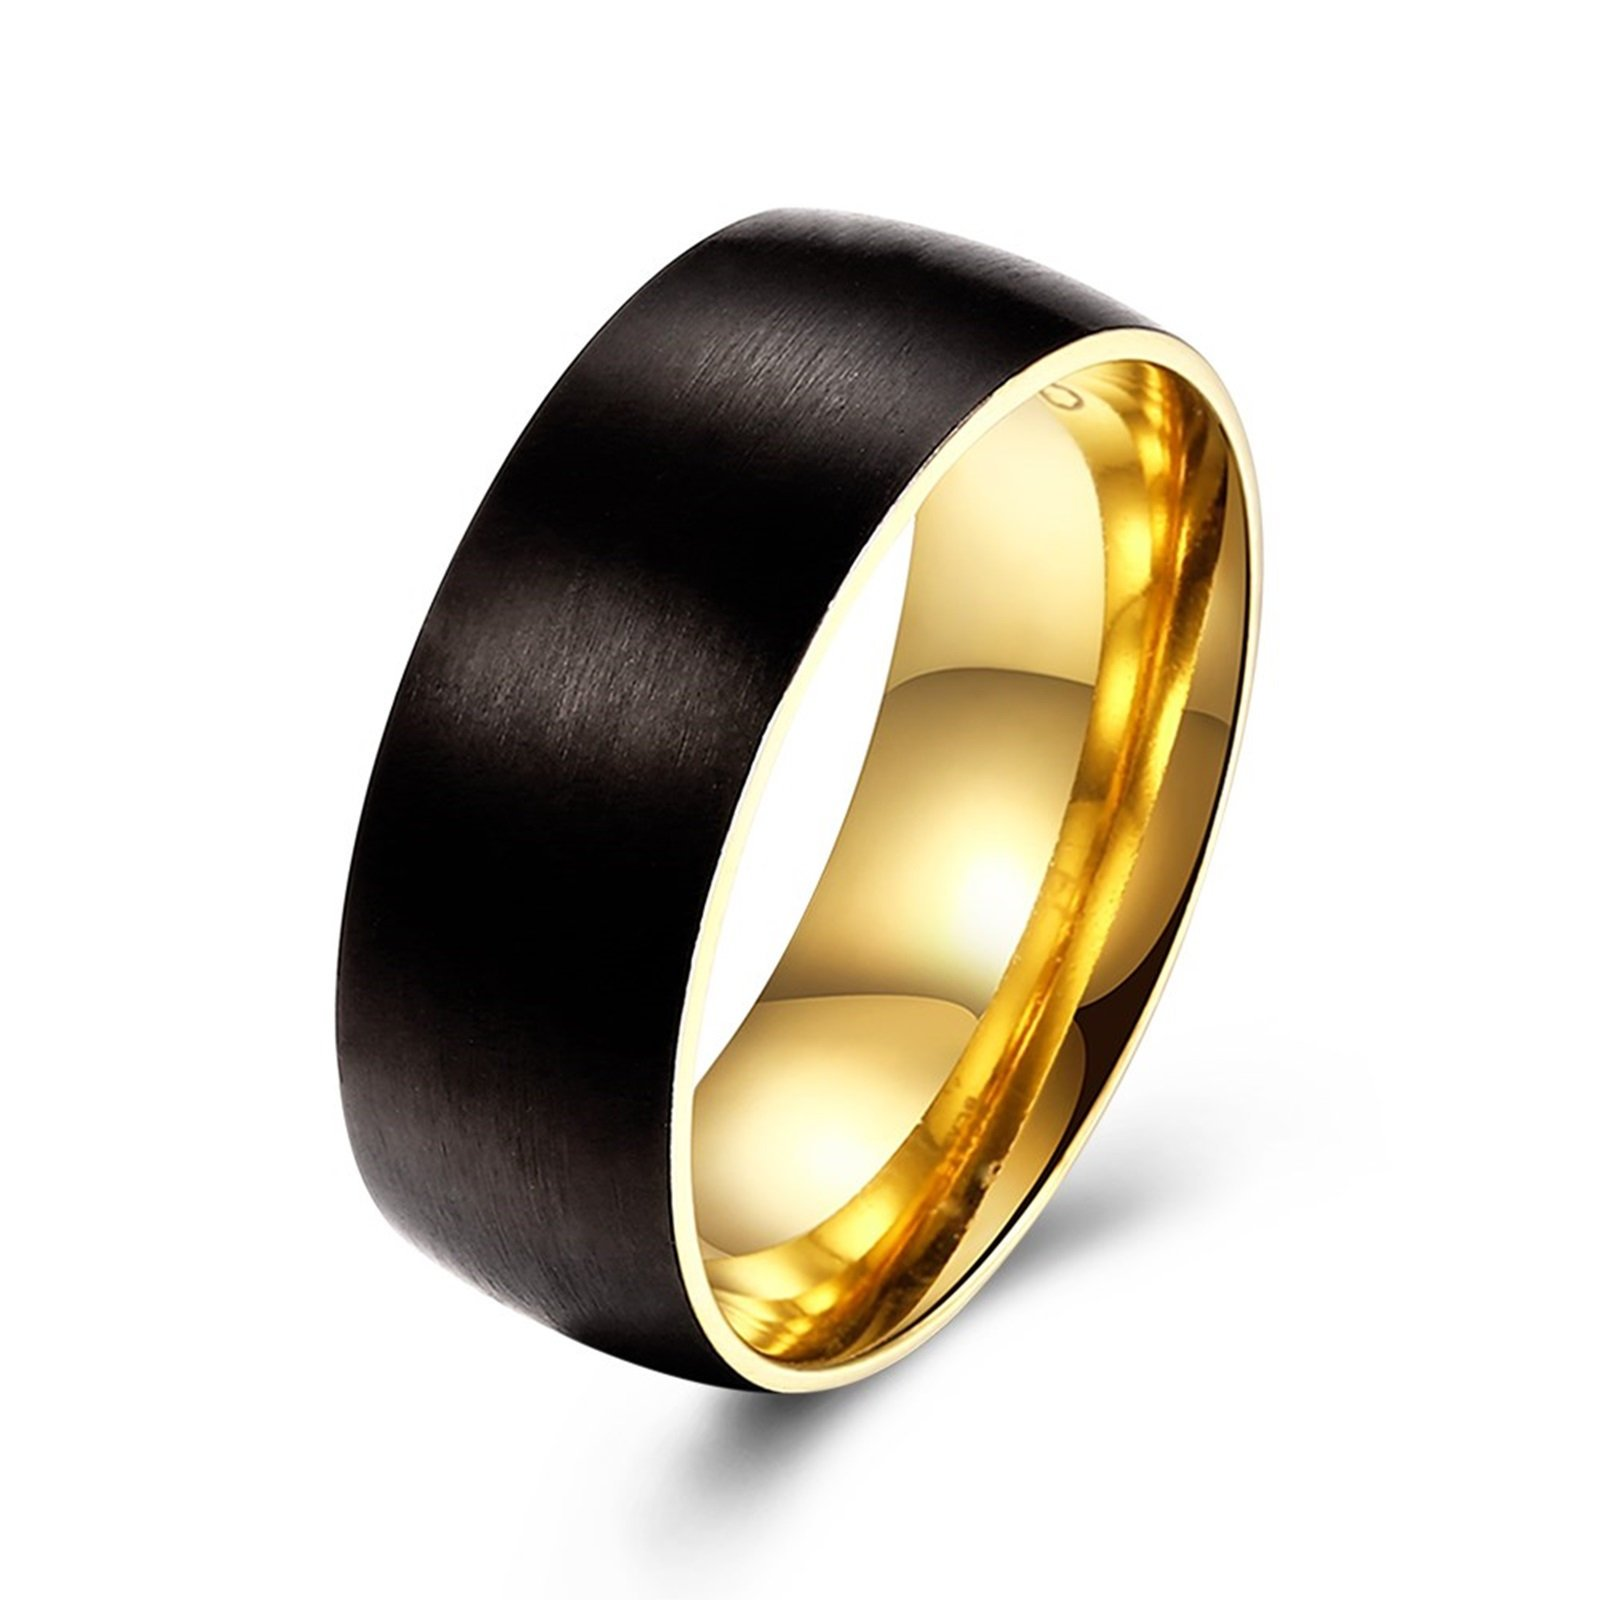 Epinki 8MM Mens Wedding Band Two Tone Black and Gold Polished Stainless Steel Ring Size 7 Men Accessories